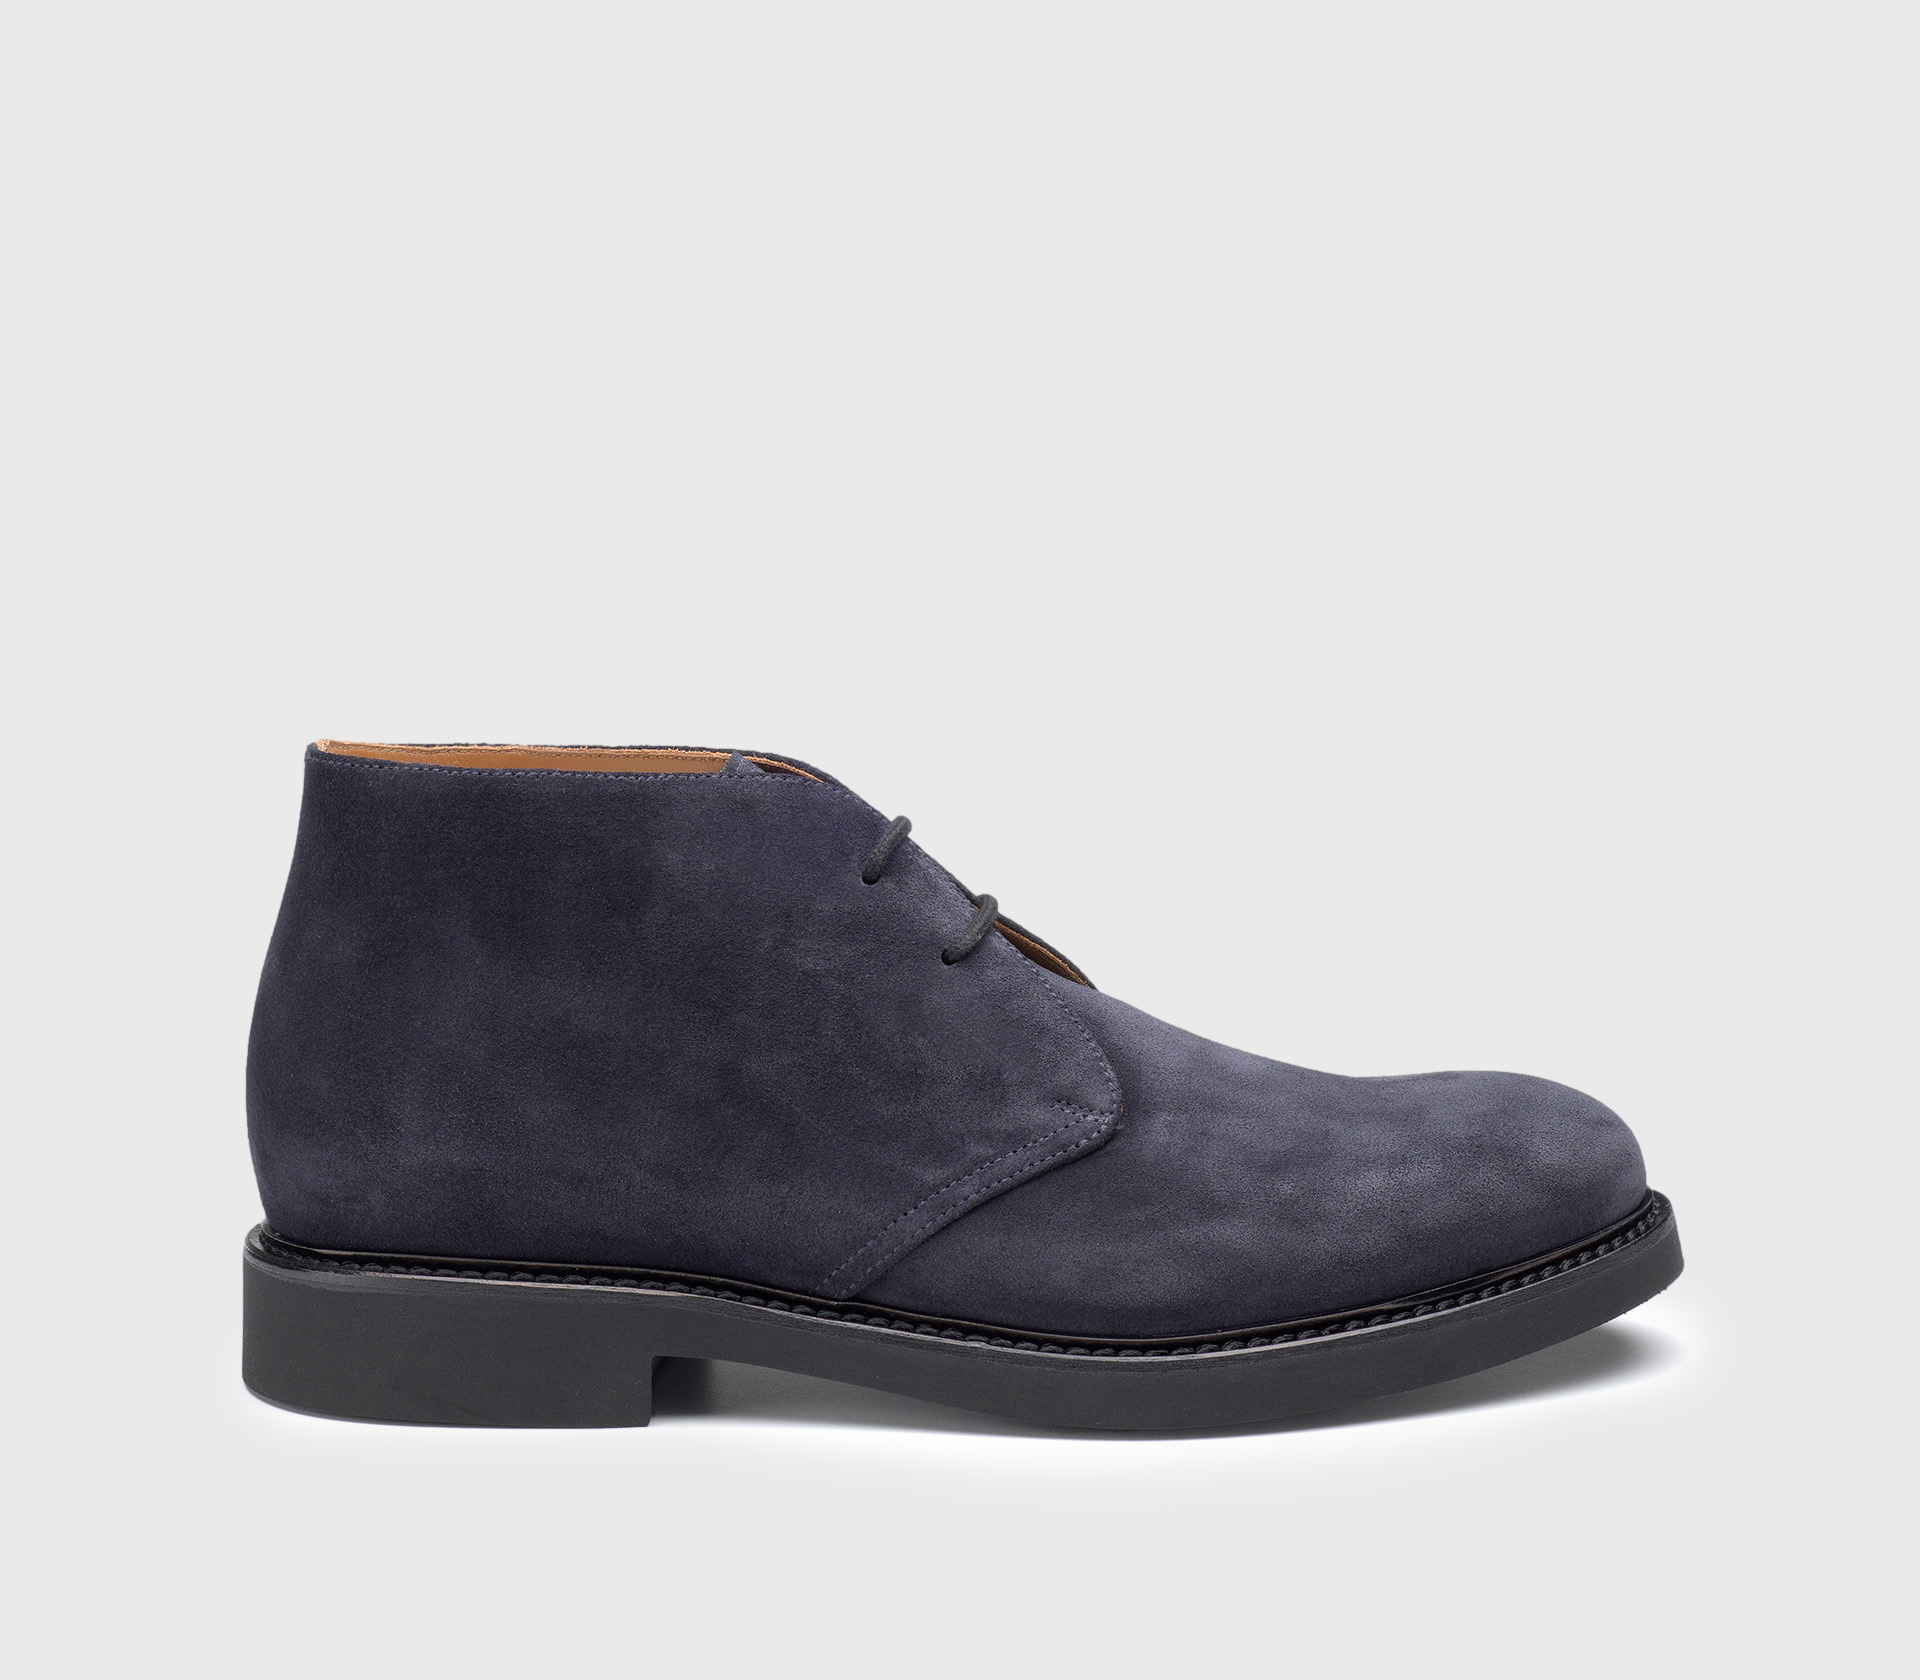 SUEDE ANKLE BOOTS DOUCAL'S   Shoes   DU1018GENOUF009NB00